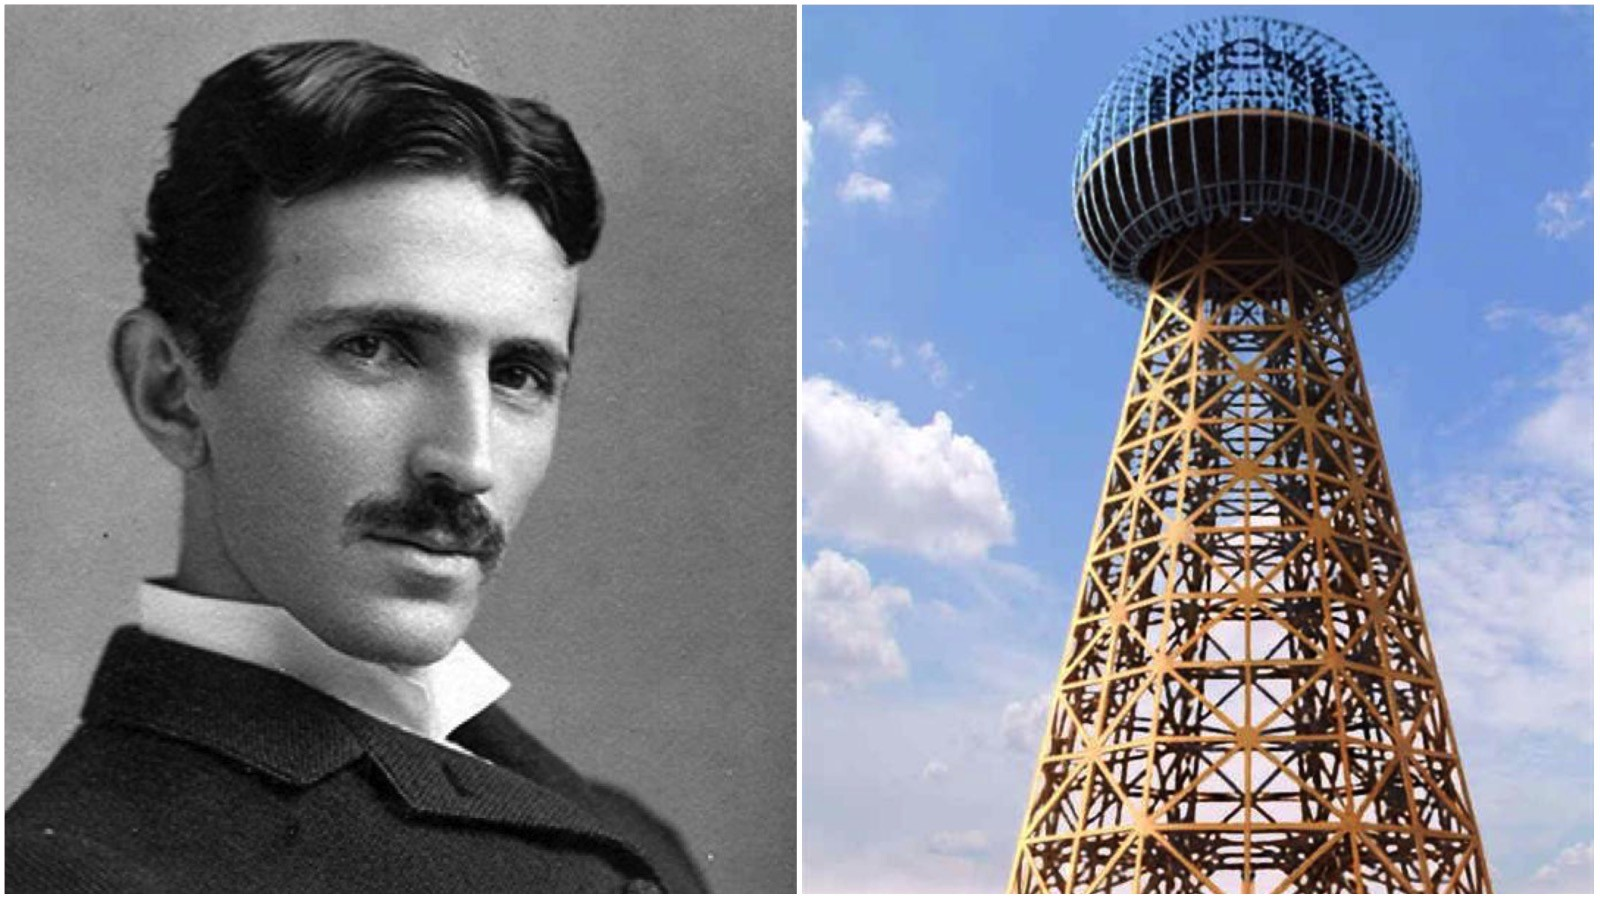 a biography of nikola tesla a serbian inventor Nikola tesla was a serbian-american engineer and inventor who is highly regarded in energy history for his development of alternating current (ac) electrical systems he also made extraordinary contributions in the fields of electromagnetism and wireless radio communications.